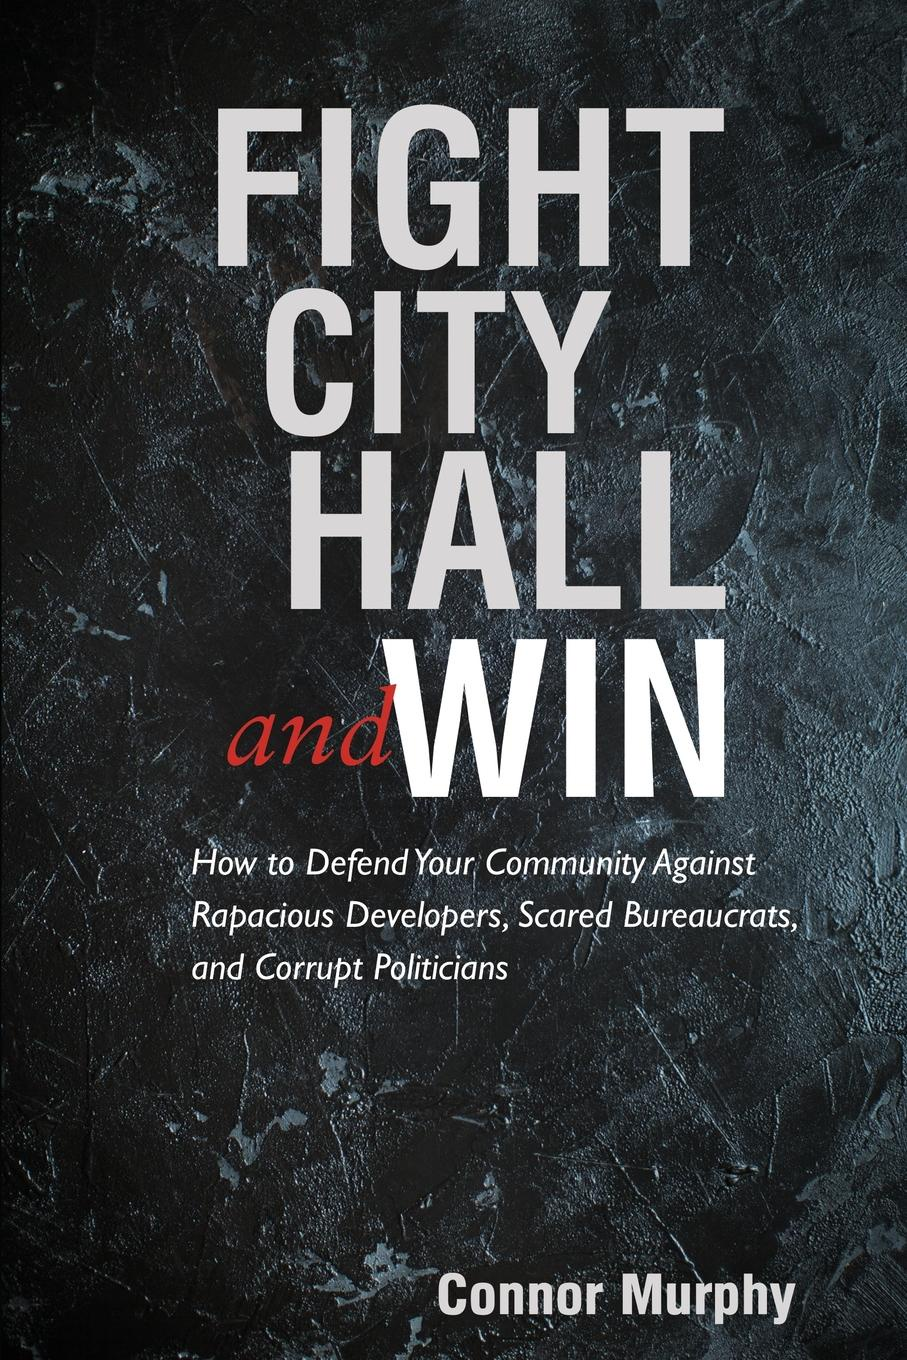 Connor Murphy Fight City Hall and Win. How to Defend Your Community against Rapacious Developers, Scared Bureaucrats, and Corrupt Politicians jordan d lewis trusted partners how companies build mutual trust and win together